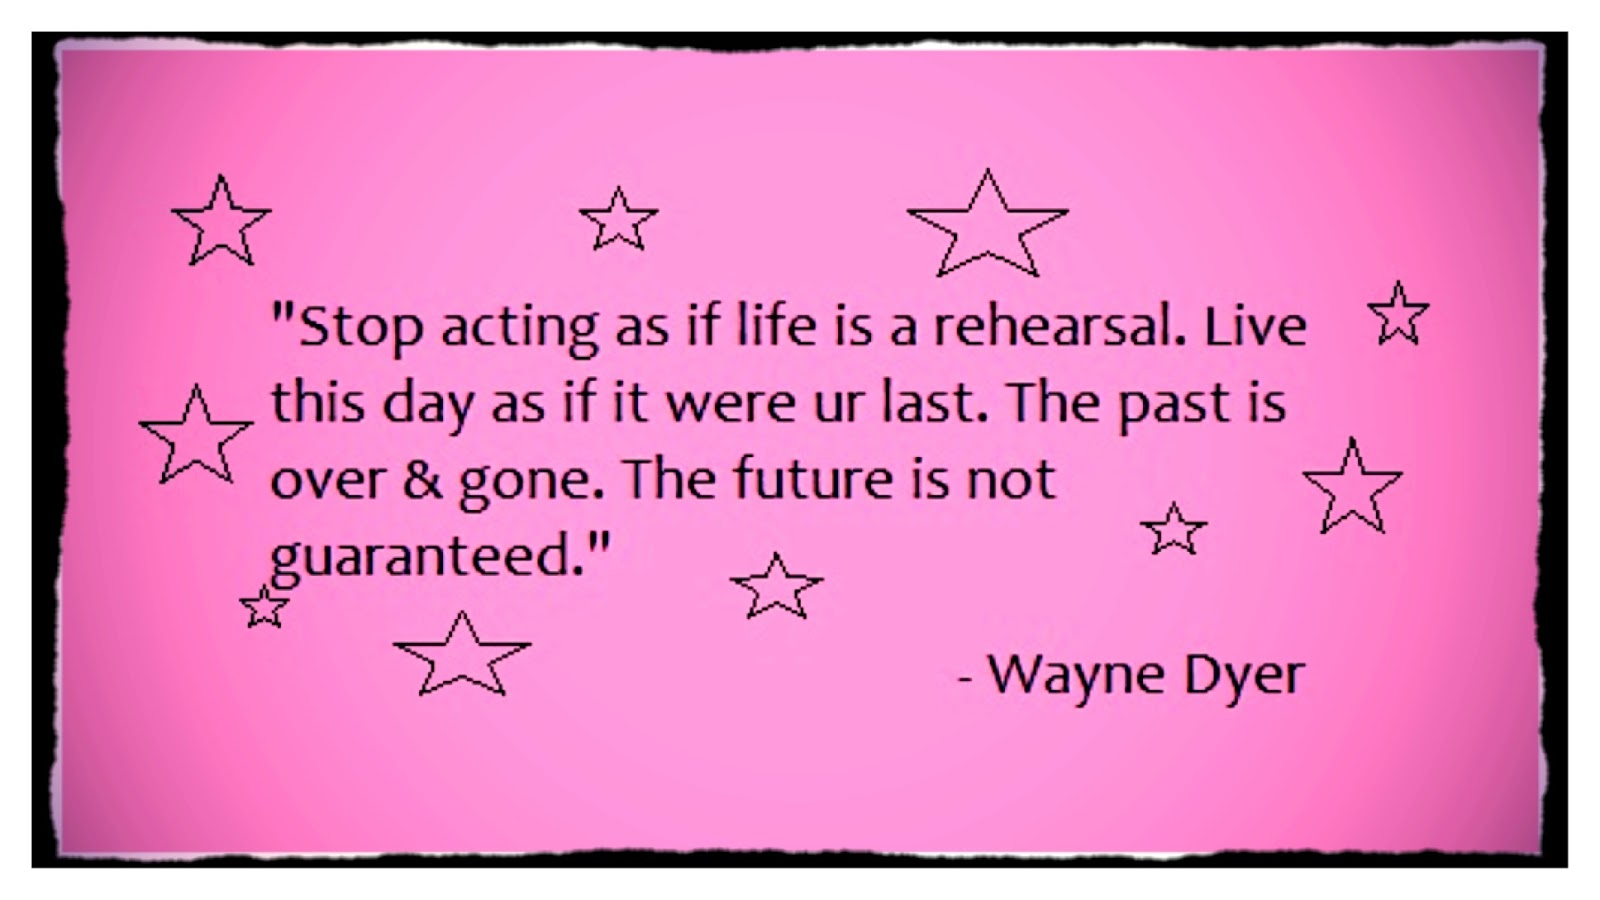 Wayne Dyer's quote #4